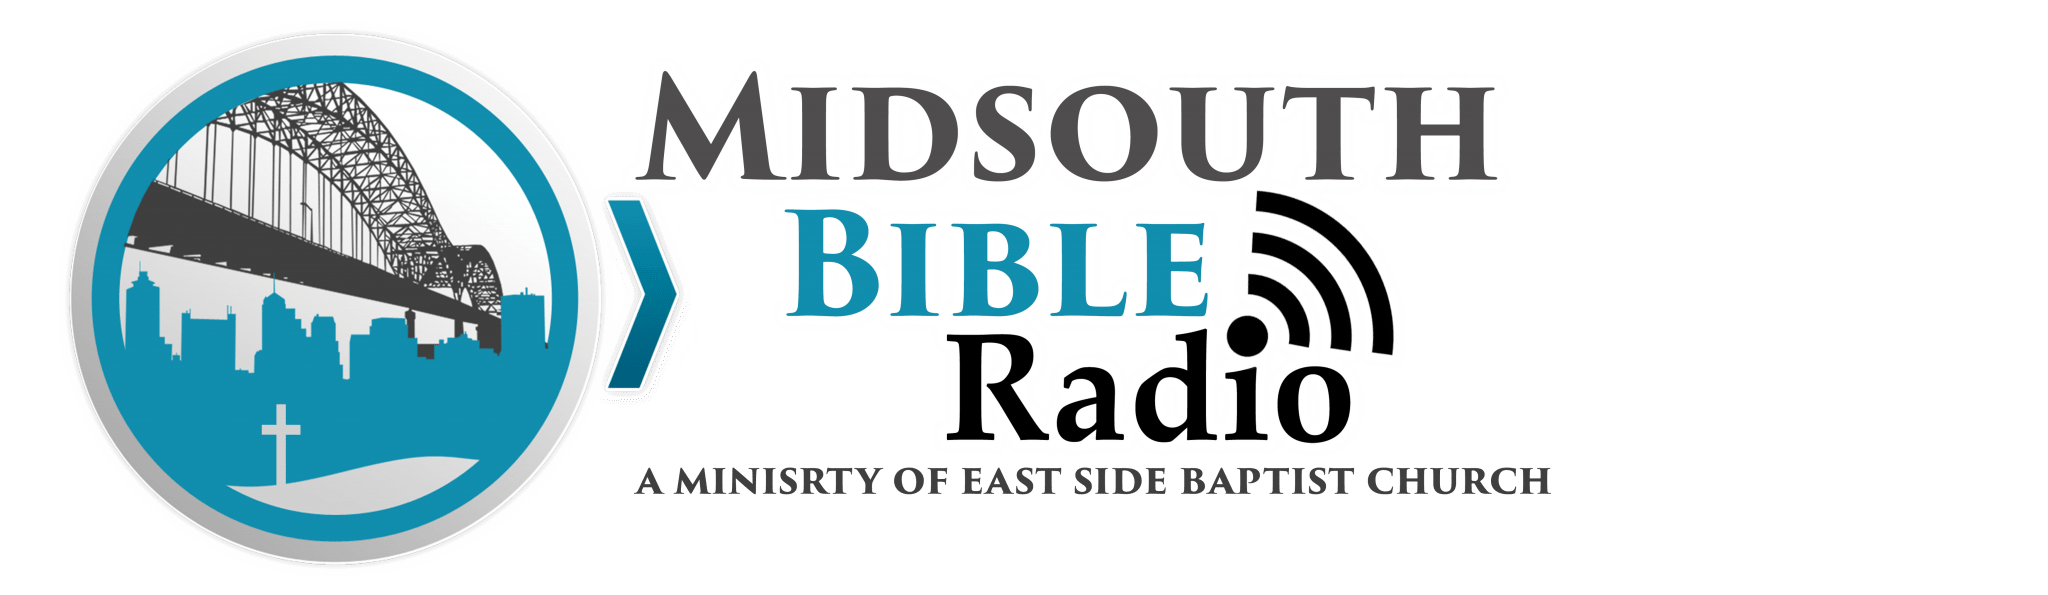 MidSouth Bible Radio